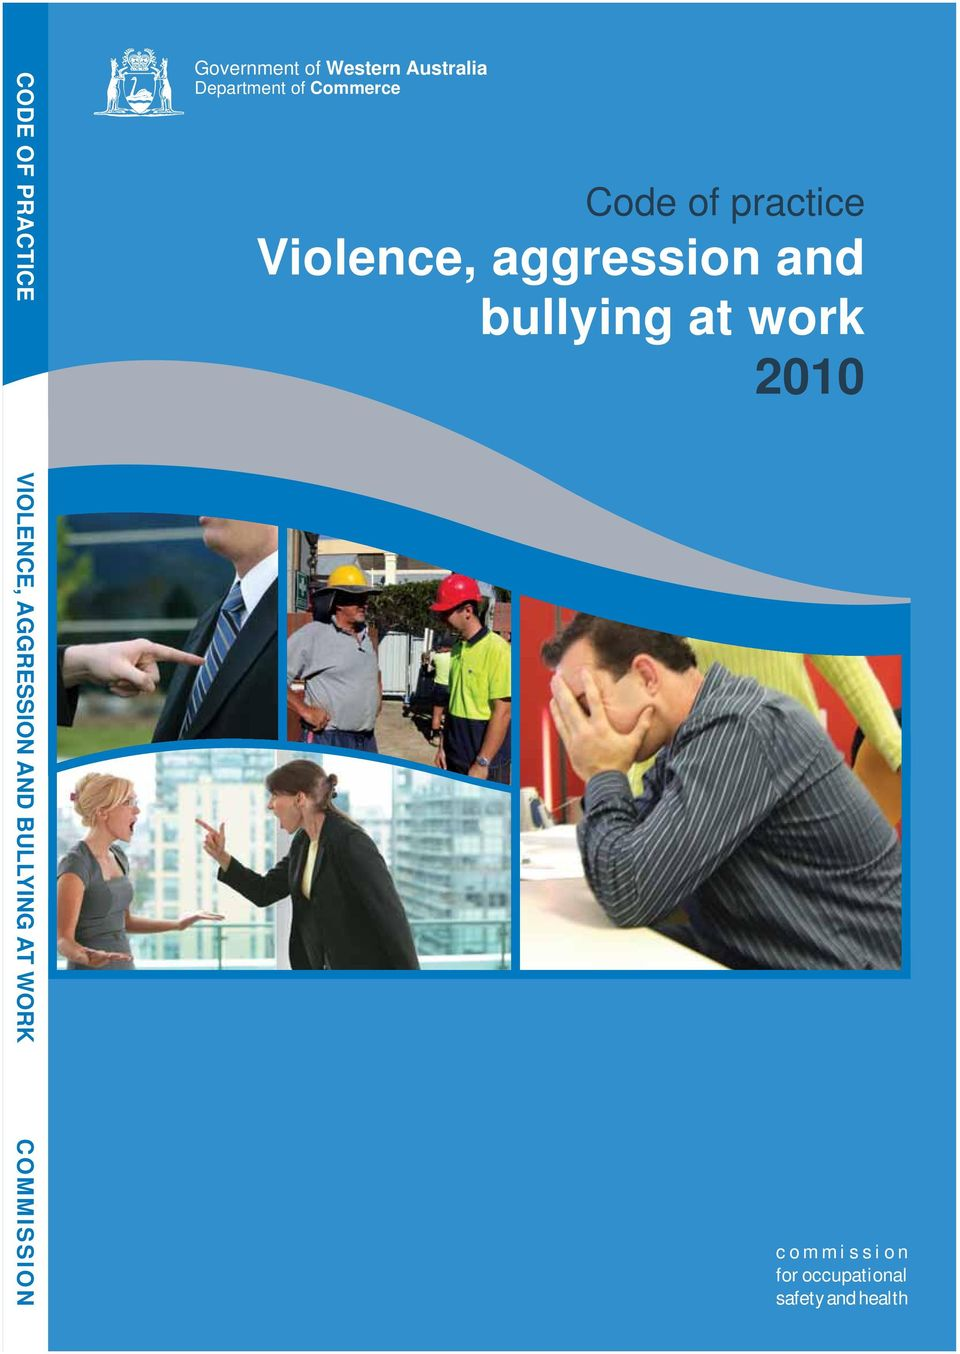 Violence, aggression and bullying at work